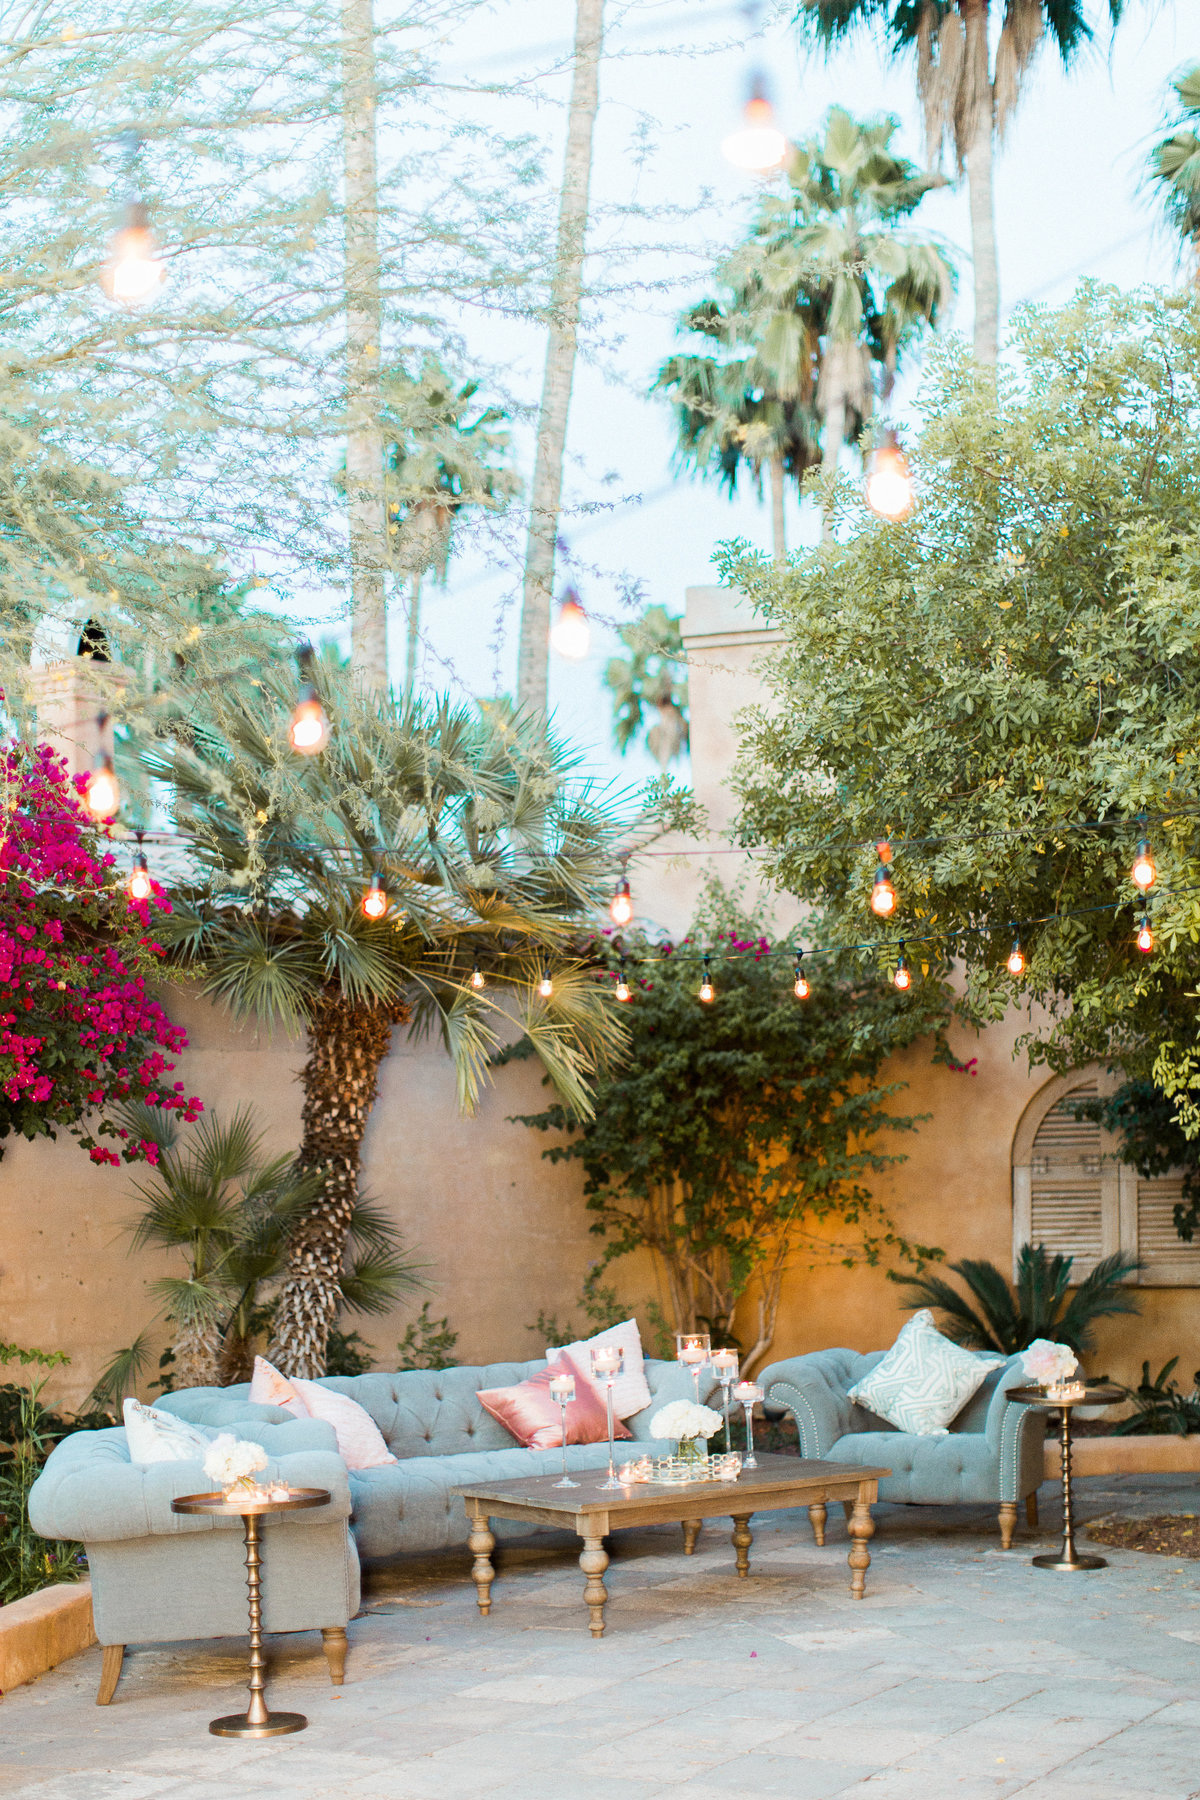 Imoni-Events-Elyse-Hall-Royal-Palms-179-7120